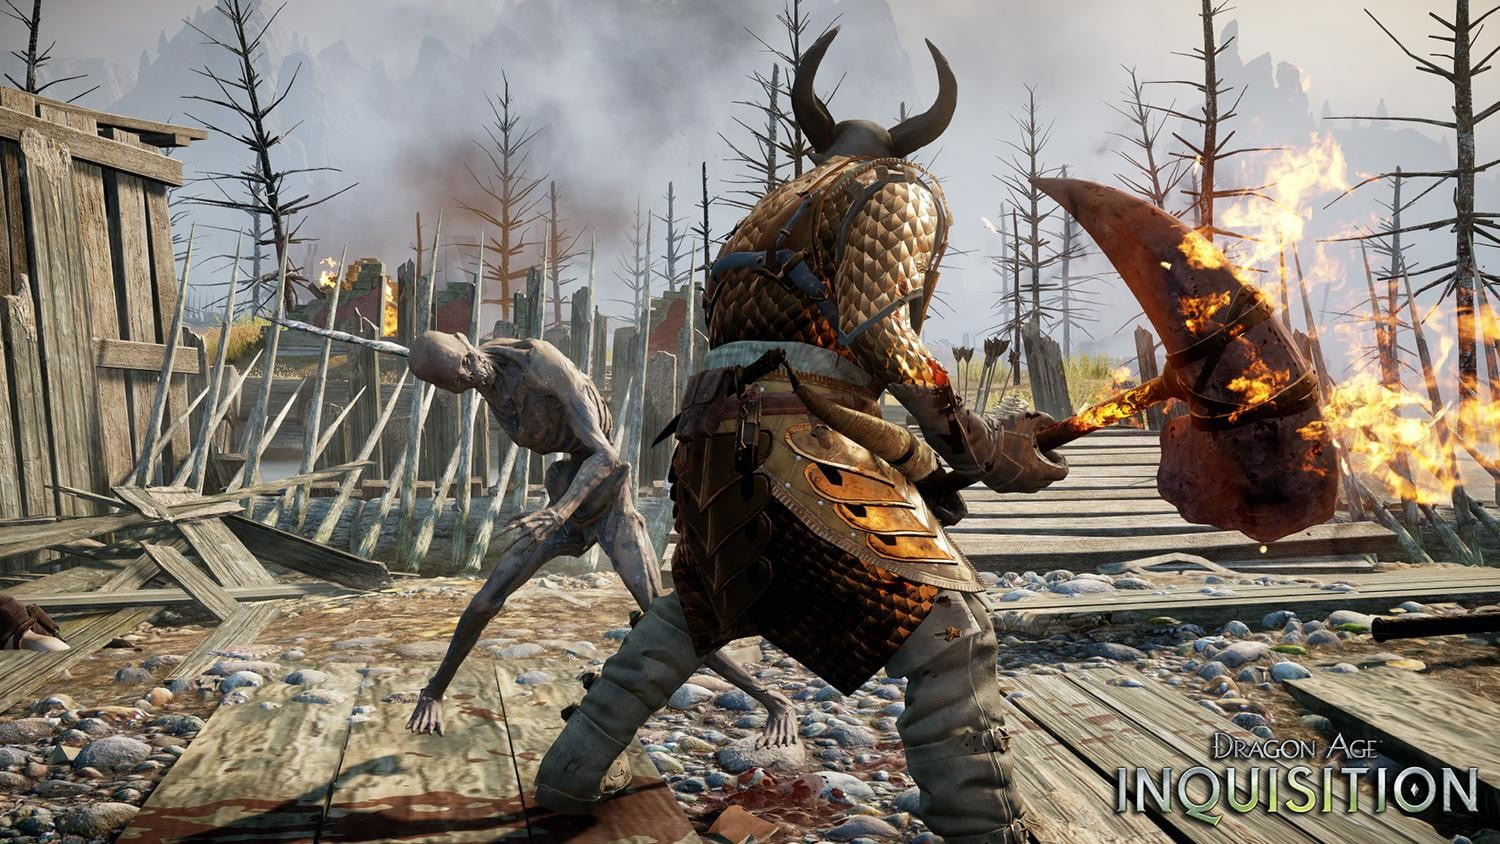 Dragon Age: Inquisition | Getting Started Guide | Digital Trends